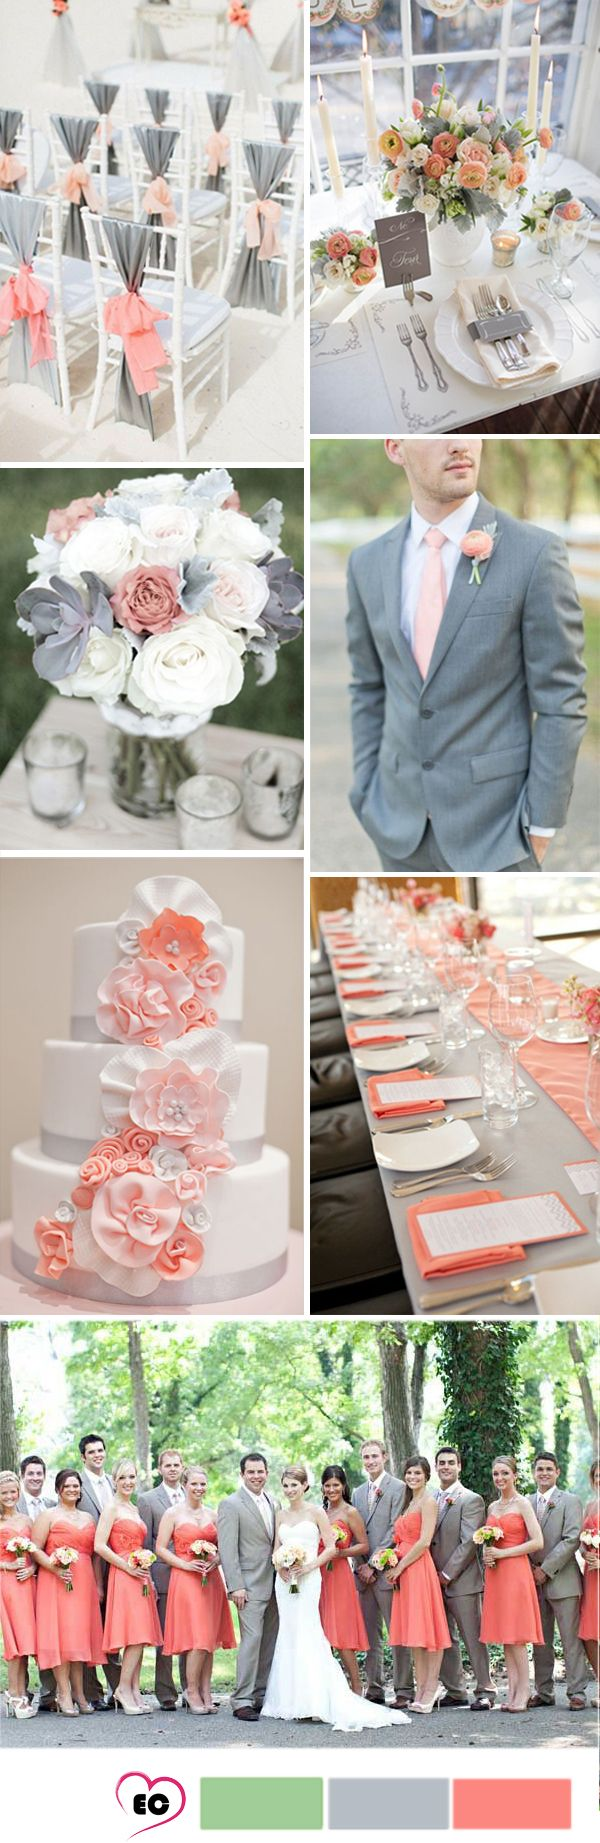 Coral  and grey wedding idea                                                                                                                                                                                 More